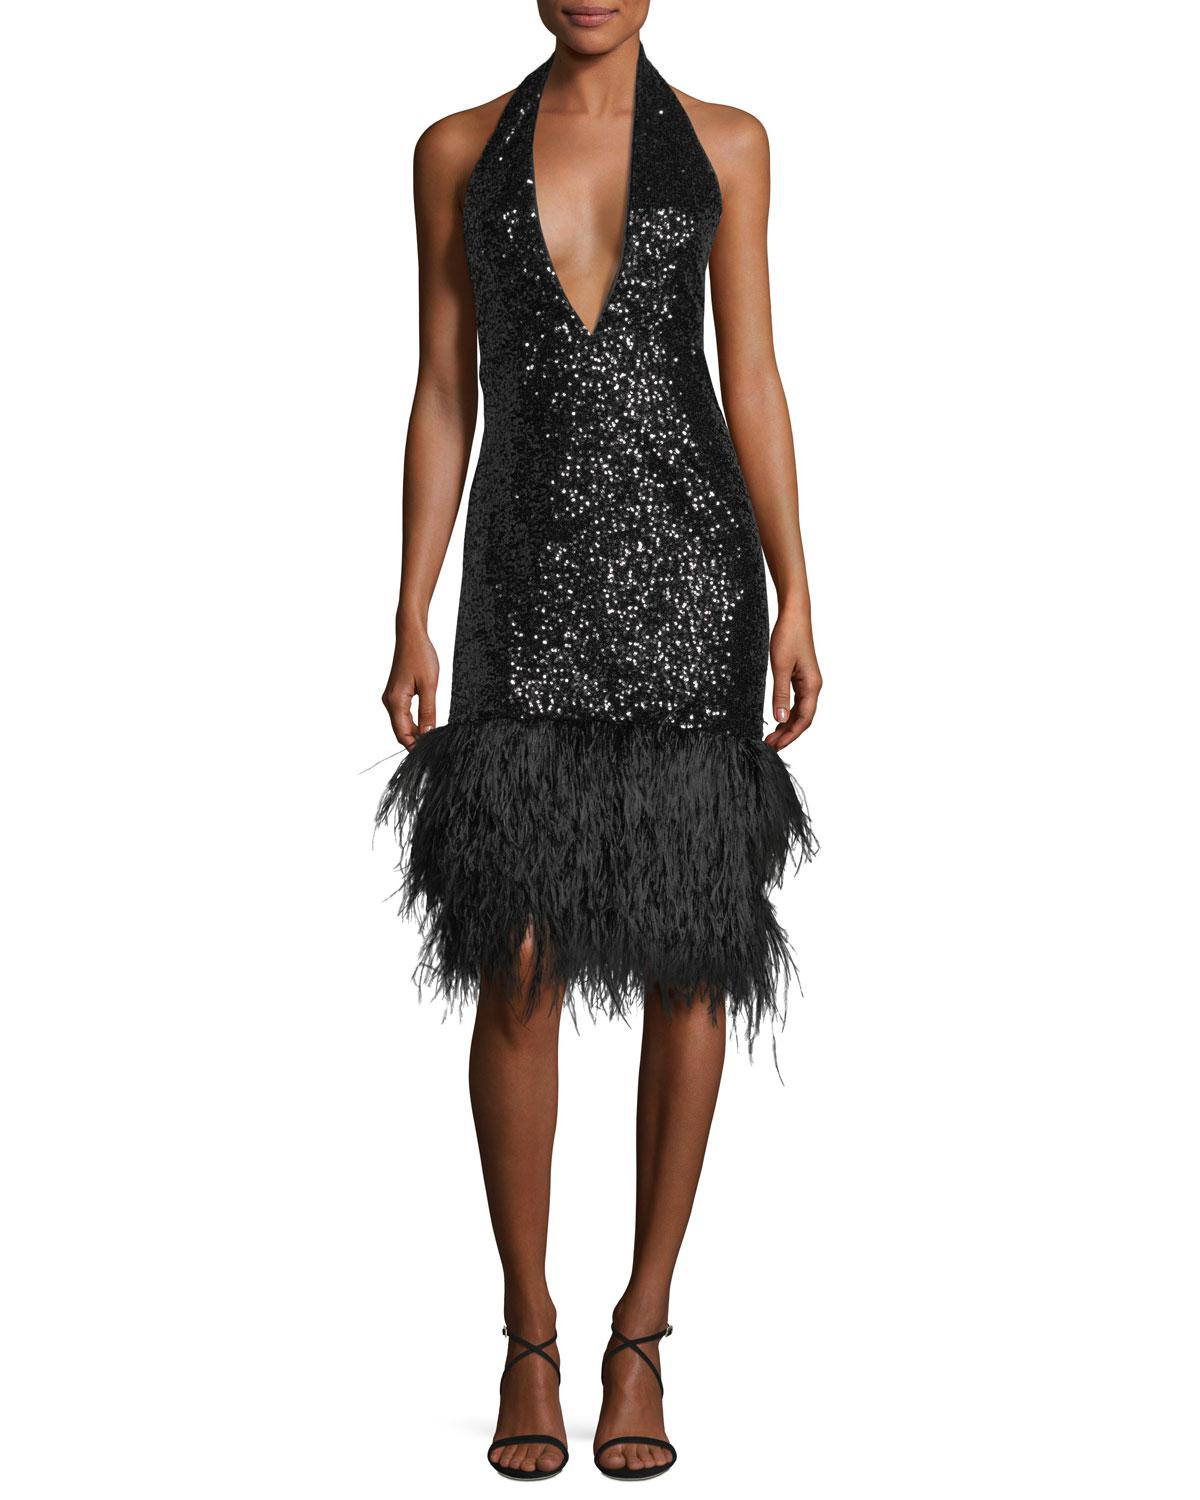 1922aa8d2c91 MILLY Amelia Plunging Halter Sequined Cocktail Dress in Black - Lyst